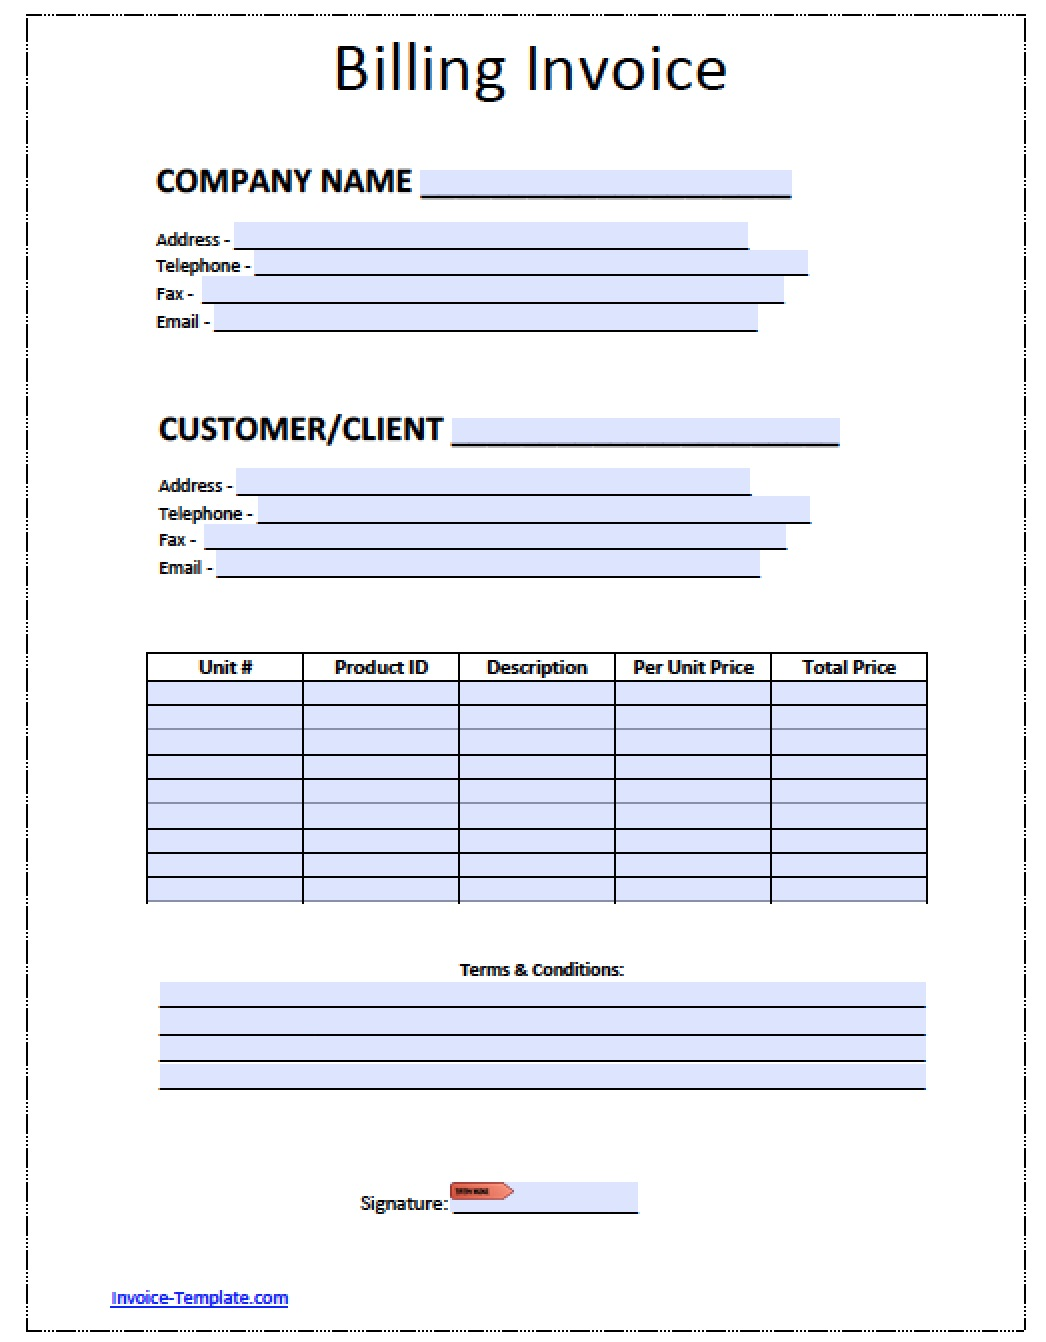 Patriotexpressus  Ravishing Billing Invoice Invoices Faq U Cloudflare Support Billing  With Lovely Free Billing Invoice Template  Excel  Pdf  Word Doc  Billing With Easy On The Eye Landscape Invoice Template Also International Commercial Invoice In Addition Invoice Scanning And Dealer Invoice Price Vs Msrp As Well As Copy Of An Invoice Additionally Construction Invoice Example From Happytomco With Patriotexpressus  Lovely Billing Invoice Invoices Faq U Cloudflare Support Billing  With Easy On The Eye Free Billing Invoice Template  Excel  Pdf  Word Doc  Billing And Ravishing Landscape Invoice Template Also International Commercial Invoice In Addition Invoice Scanning From Happytomco